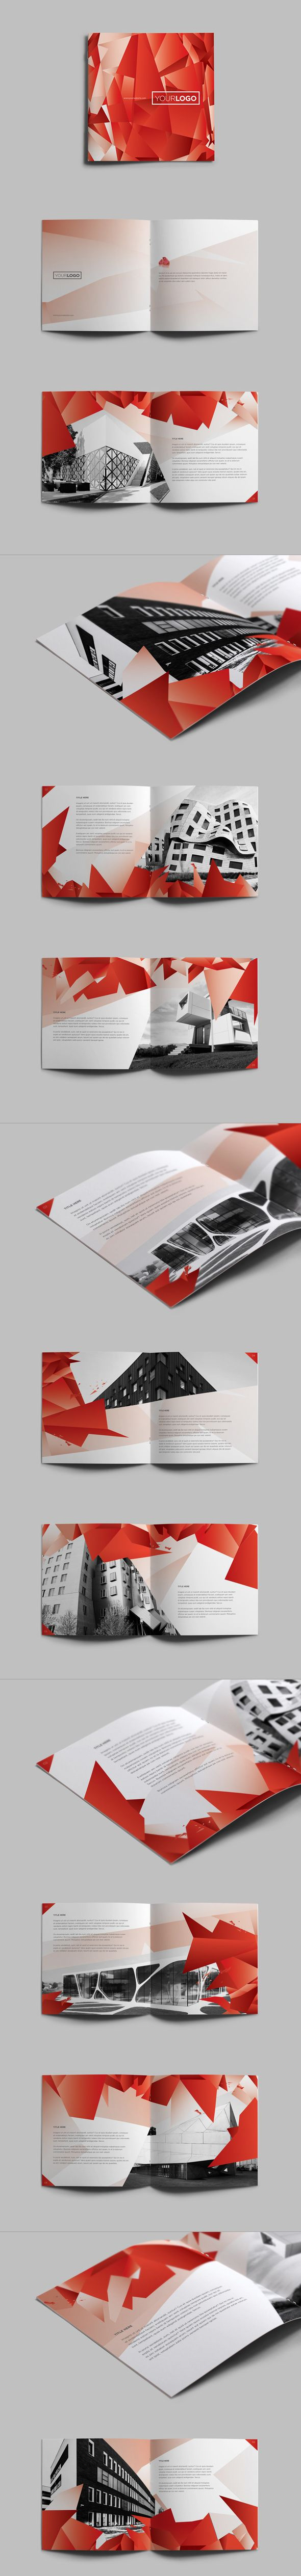 Brochure Design | Designer: Abra Design